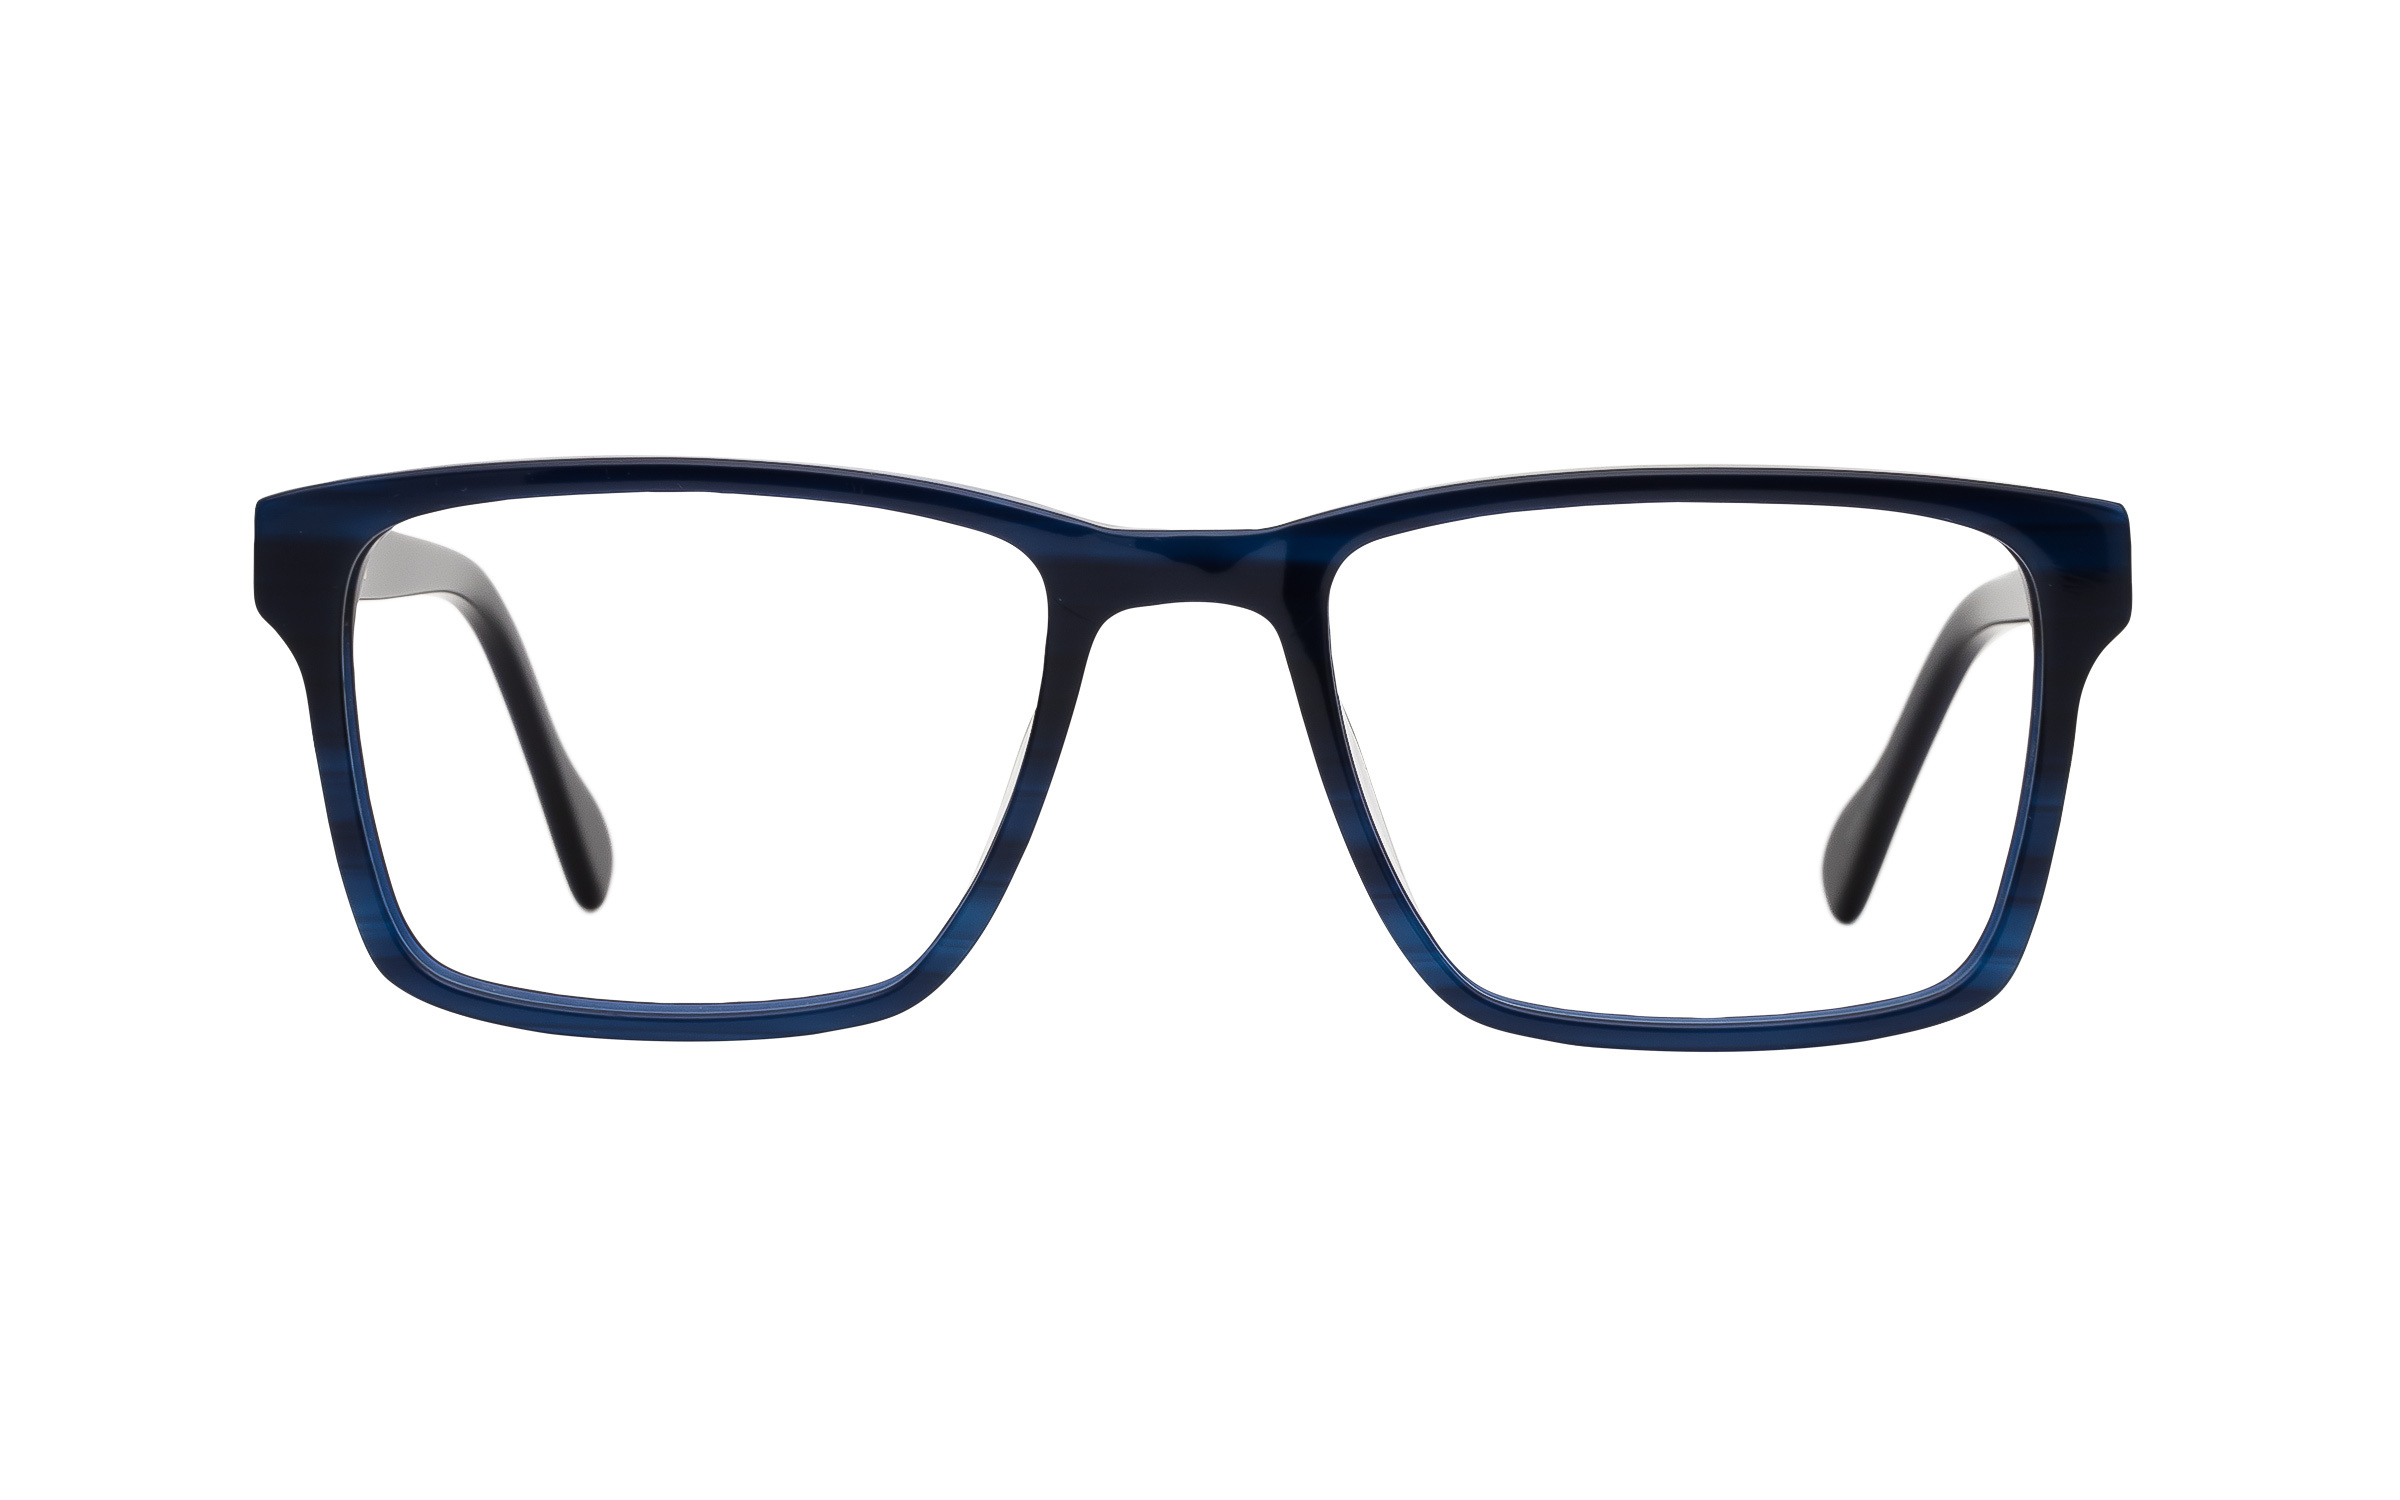 7 for All Mankind Glasses Rectangular Blue Online Clearly